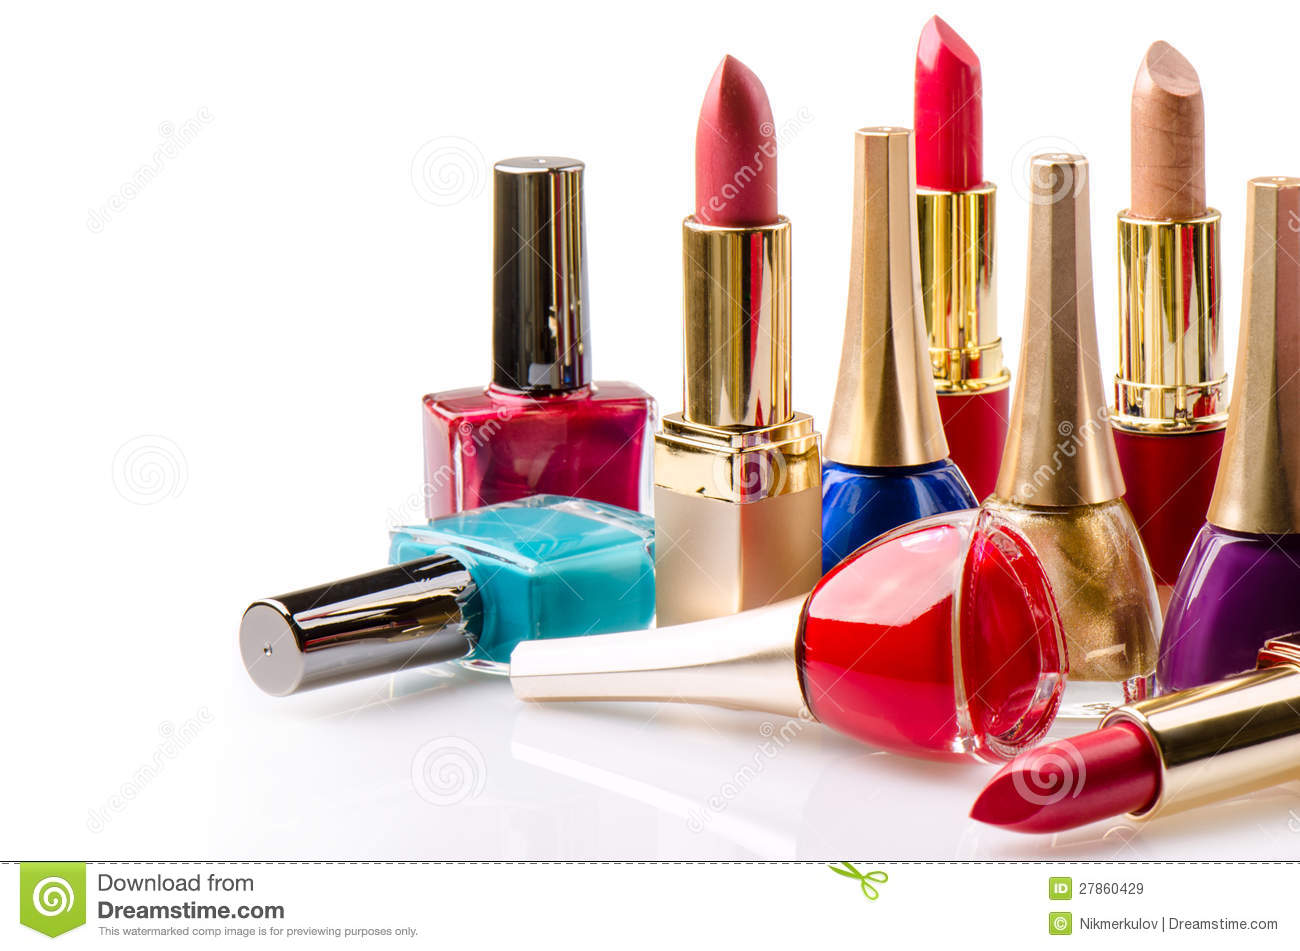 imc plan on mac cosmetics View imc assessment 1 from mm bho2655 at victoria au integrated marketing communications plan: loral 1 executive summary the cosmetics and beauty industry is a highly competitive market.